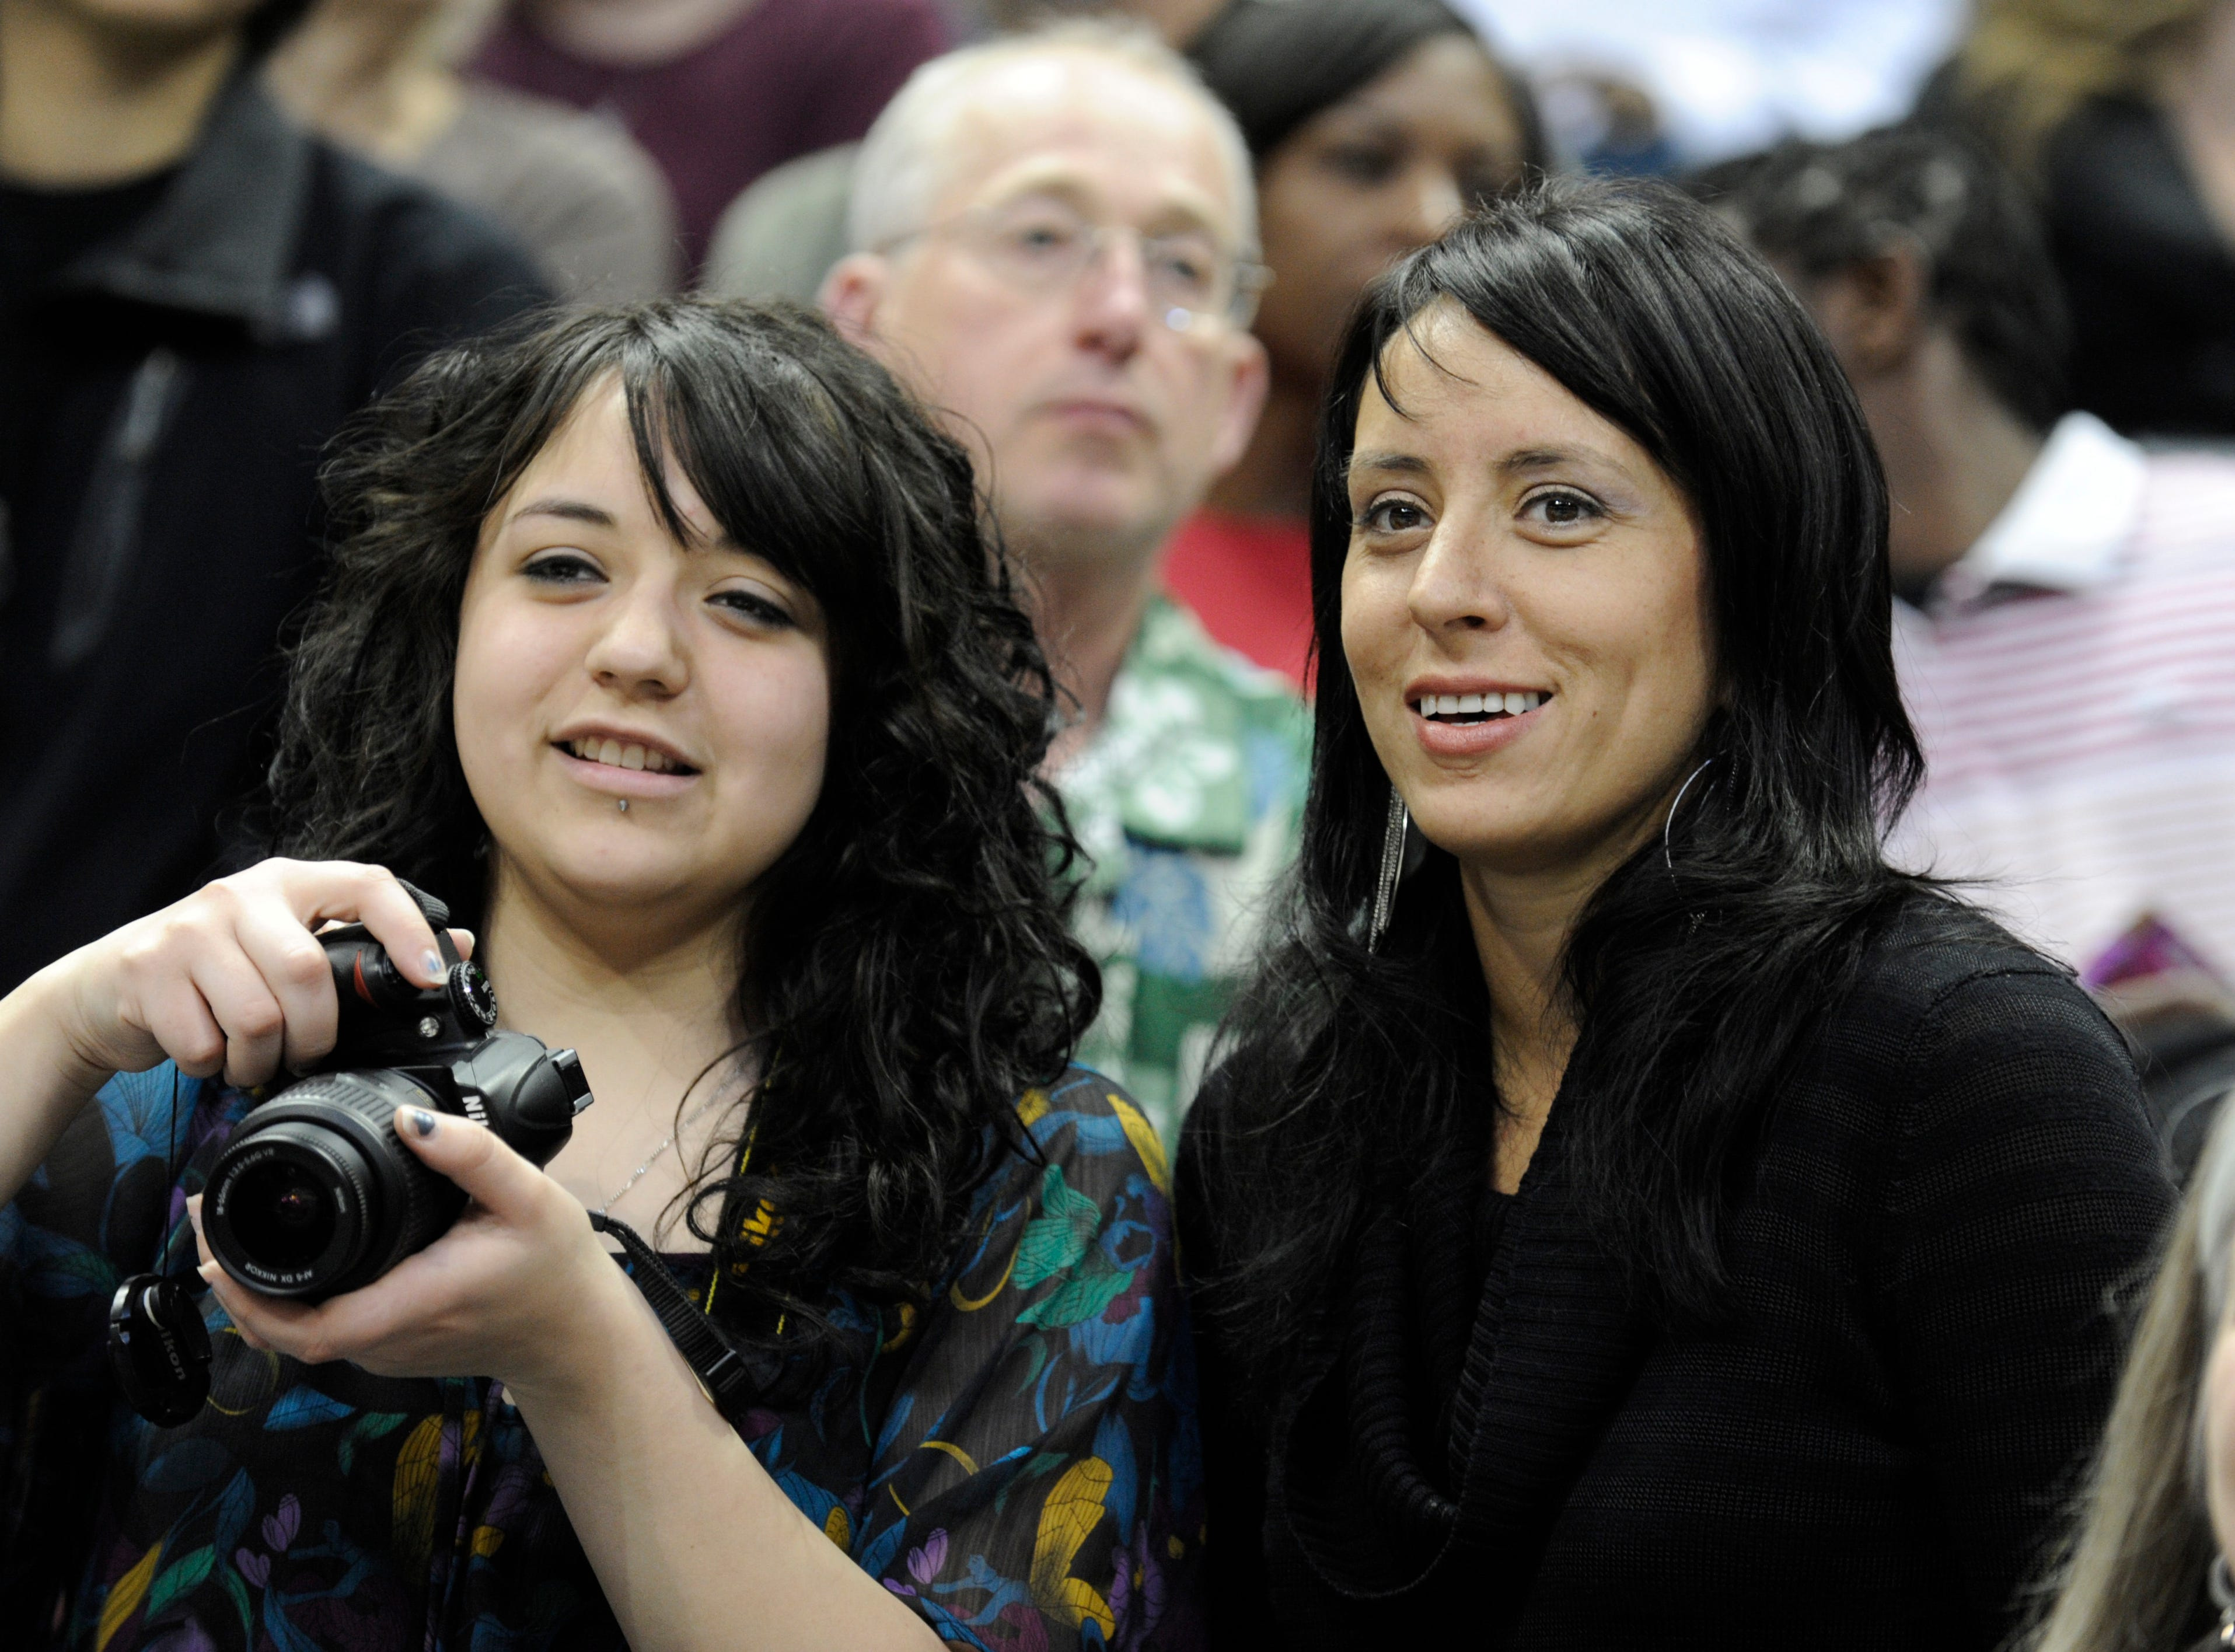 2012: Cheyenne Gilles (left) and Annamaria Shields watch students from Tippecanoe School perform, including Cheyenne's daughter Aishah Cartagena during the Danceworks Mad Hot Ballroom and Tap competition at the Bradley Center.